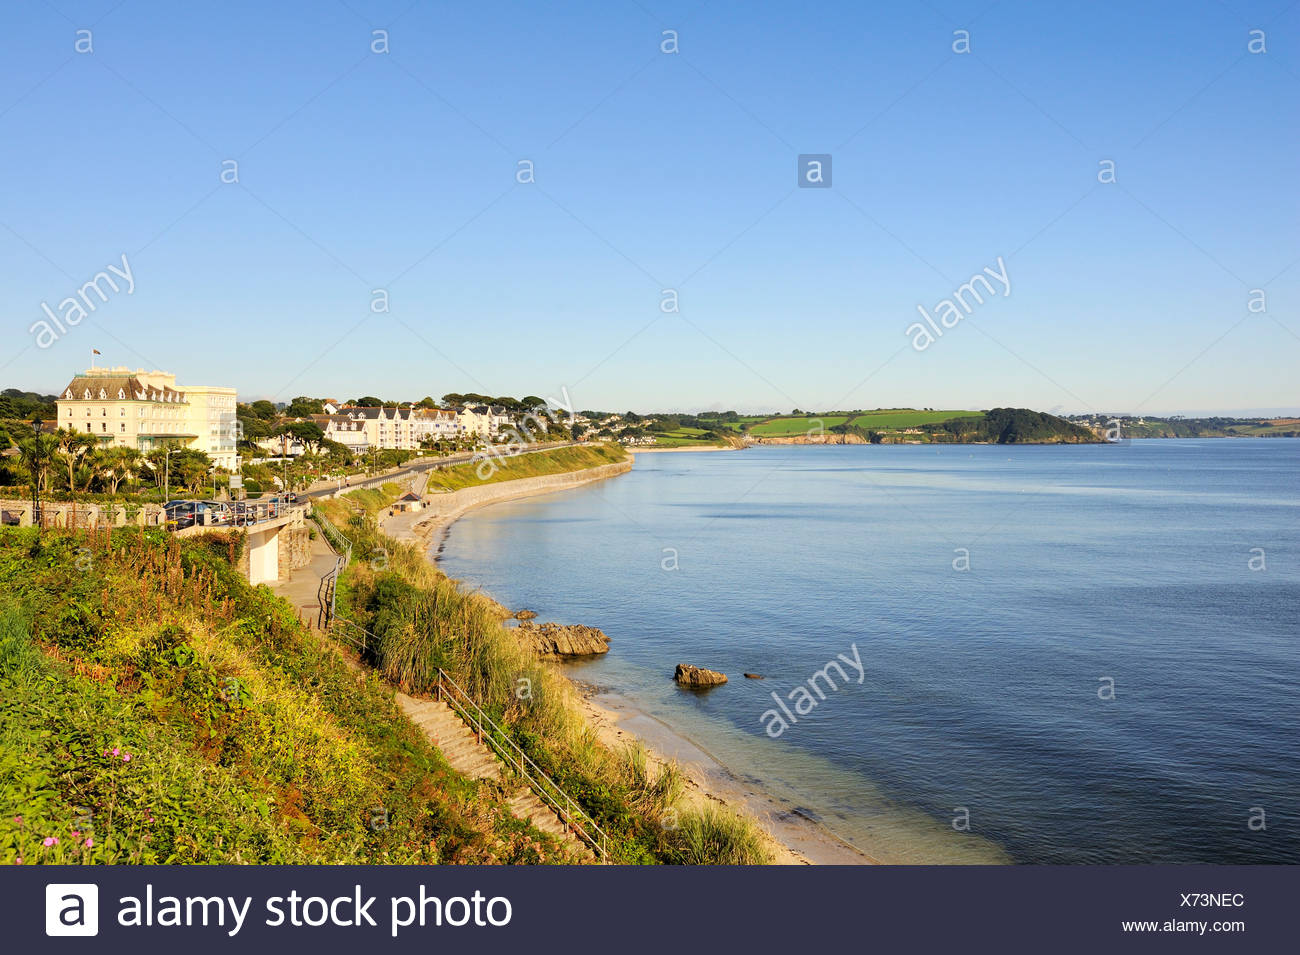 Overlooking the Bay of Falmouth, Cornwall, England, UK, Europe - Stock Image